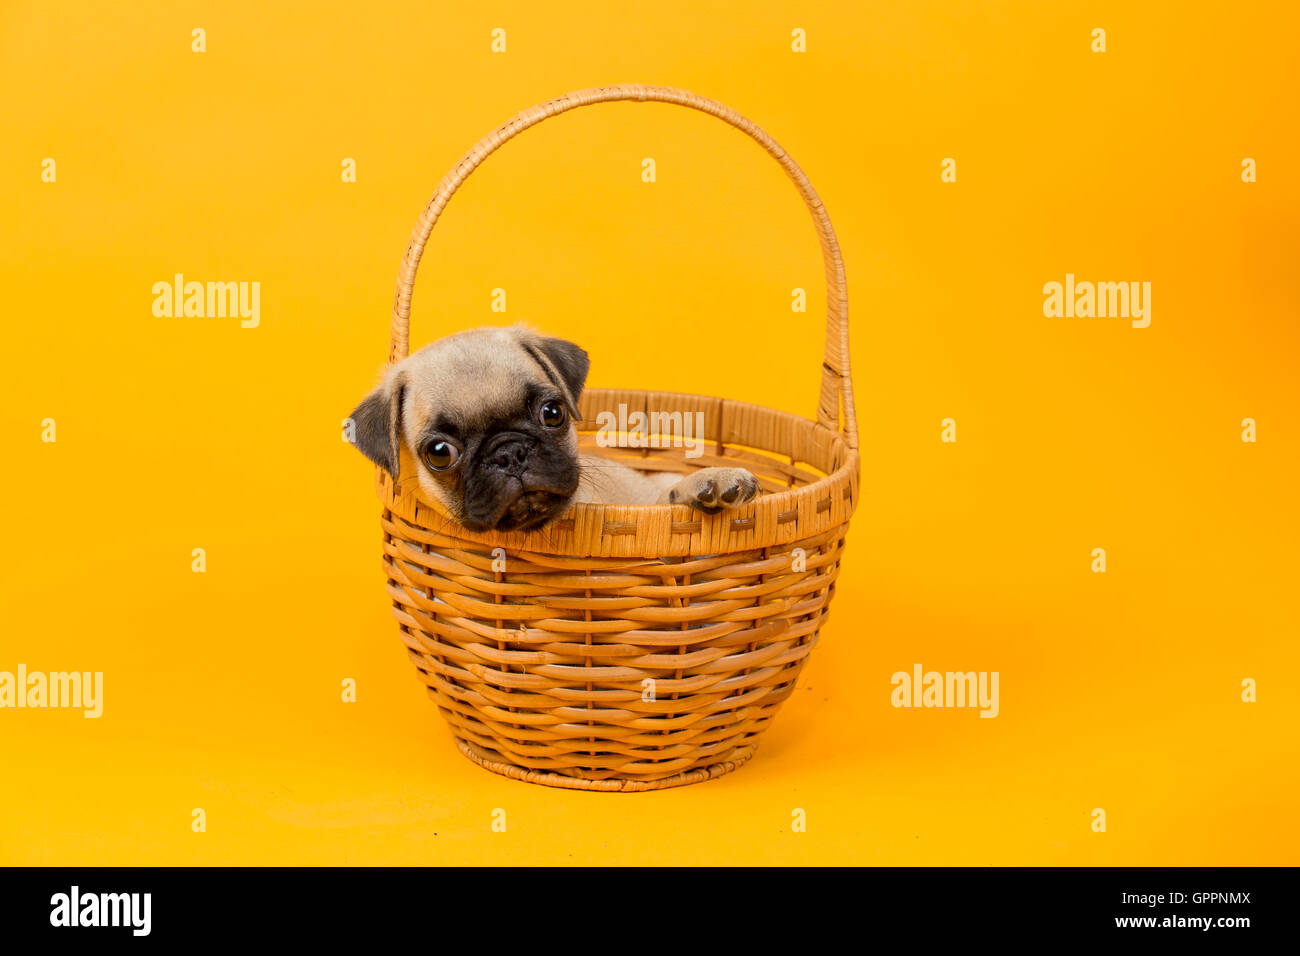 A beautiful pug puppy place in a basket - Stock Image